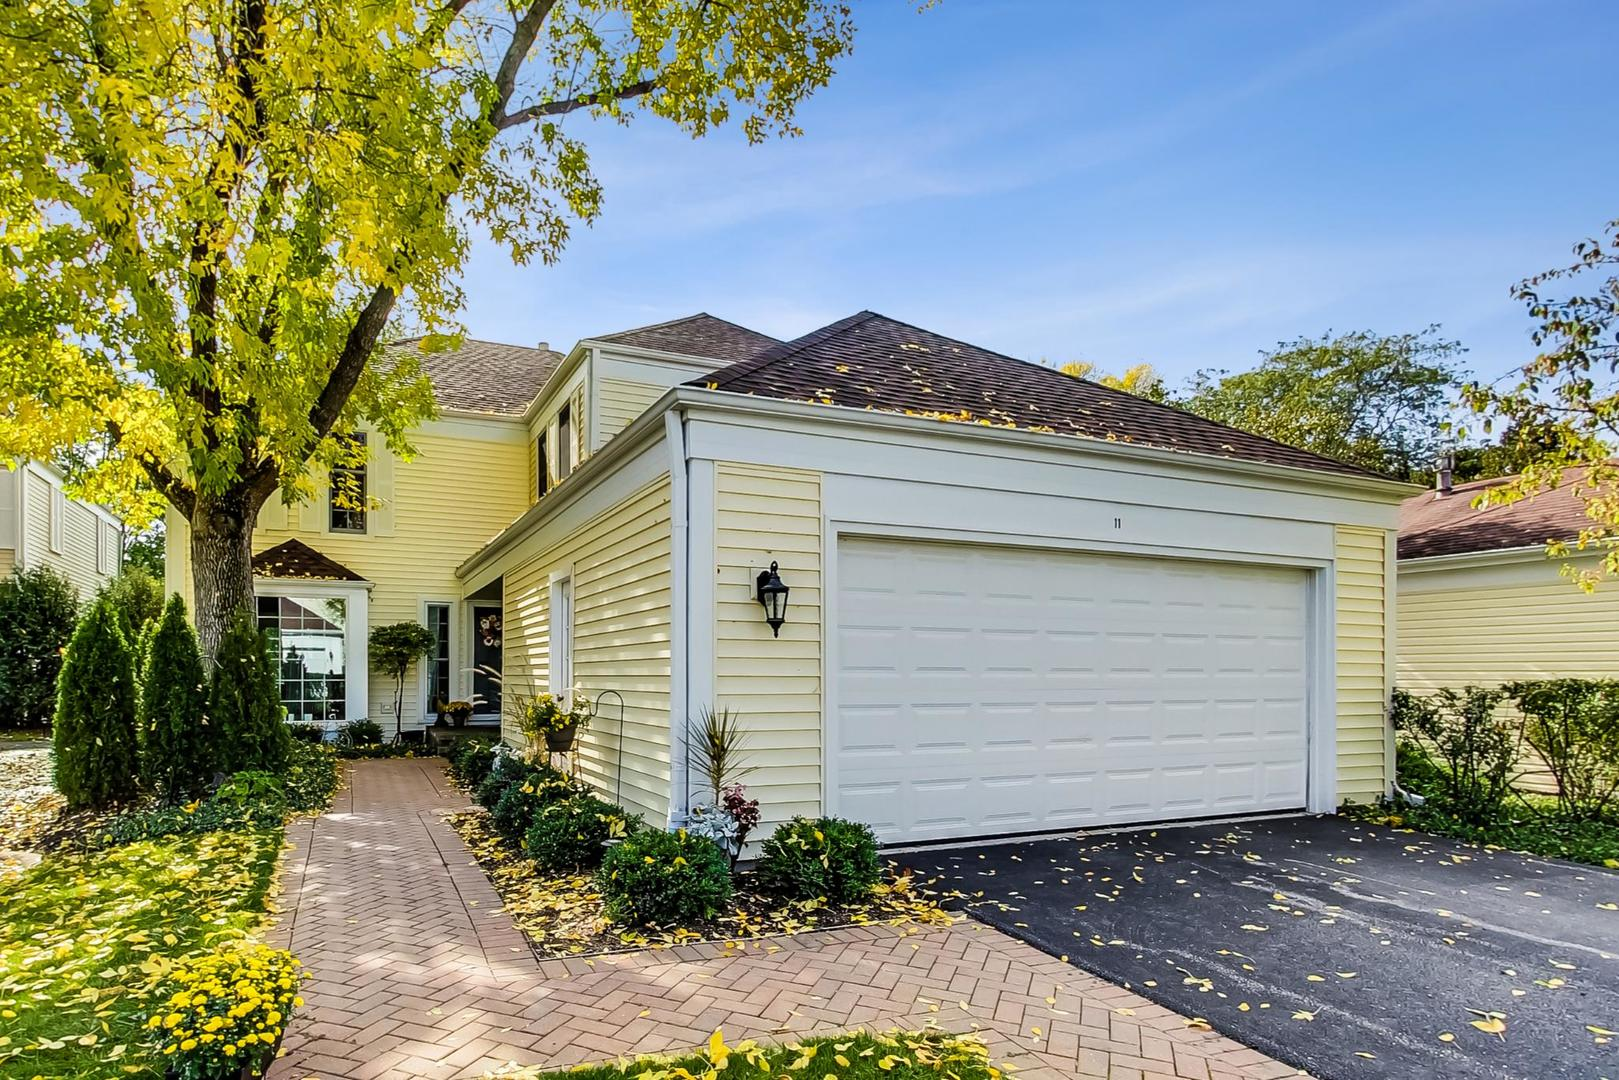 11 The Court Of Lagoon View, Northbrook, IL 60062